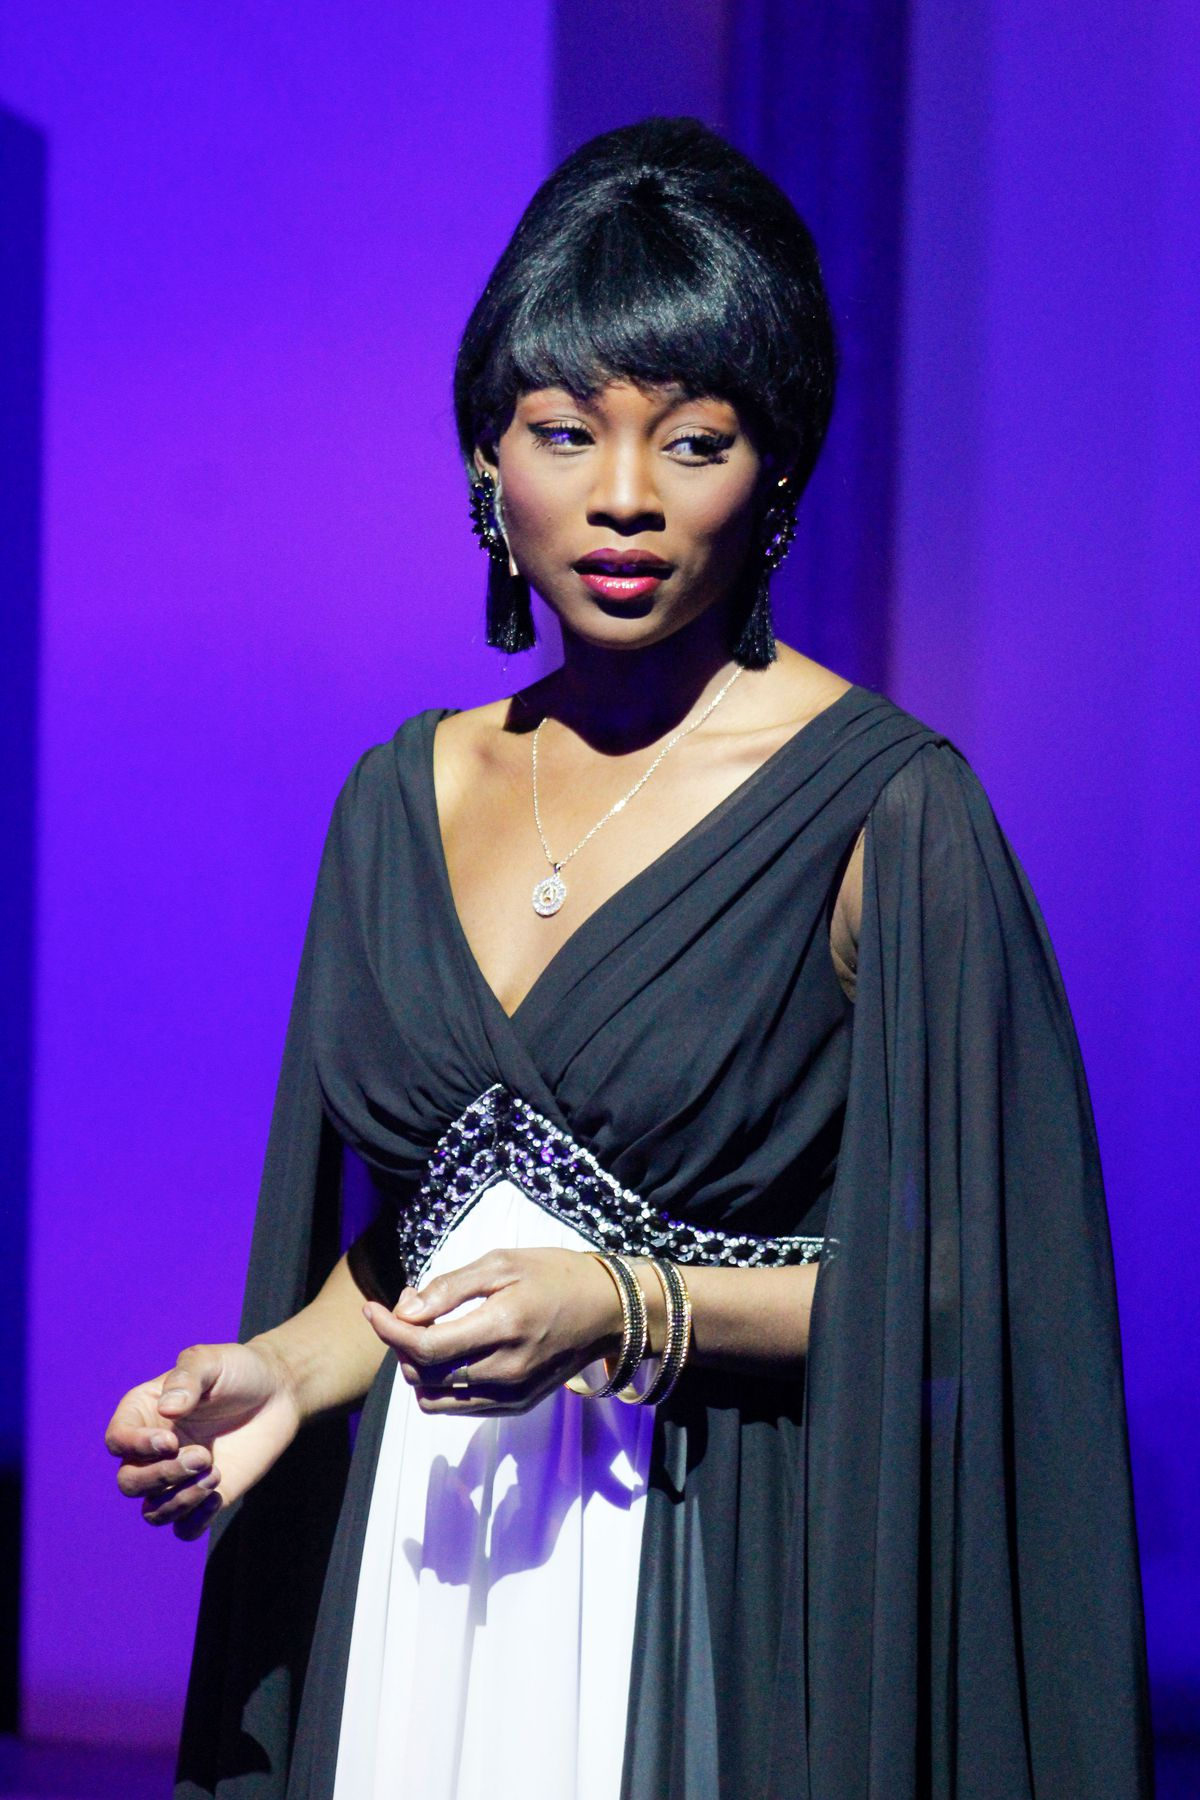 """Jayla Craig stars as Young Nancy in Black Ensemble Theater's """"Style and Grace: In Tribute to Lena Horne and Nancy Wilson,"""" directed and written by Kylah Frye."""